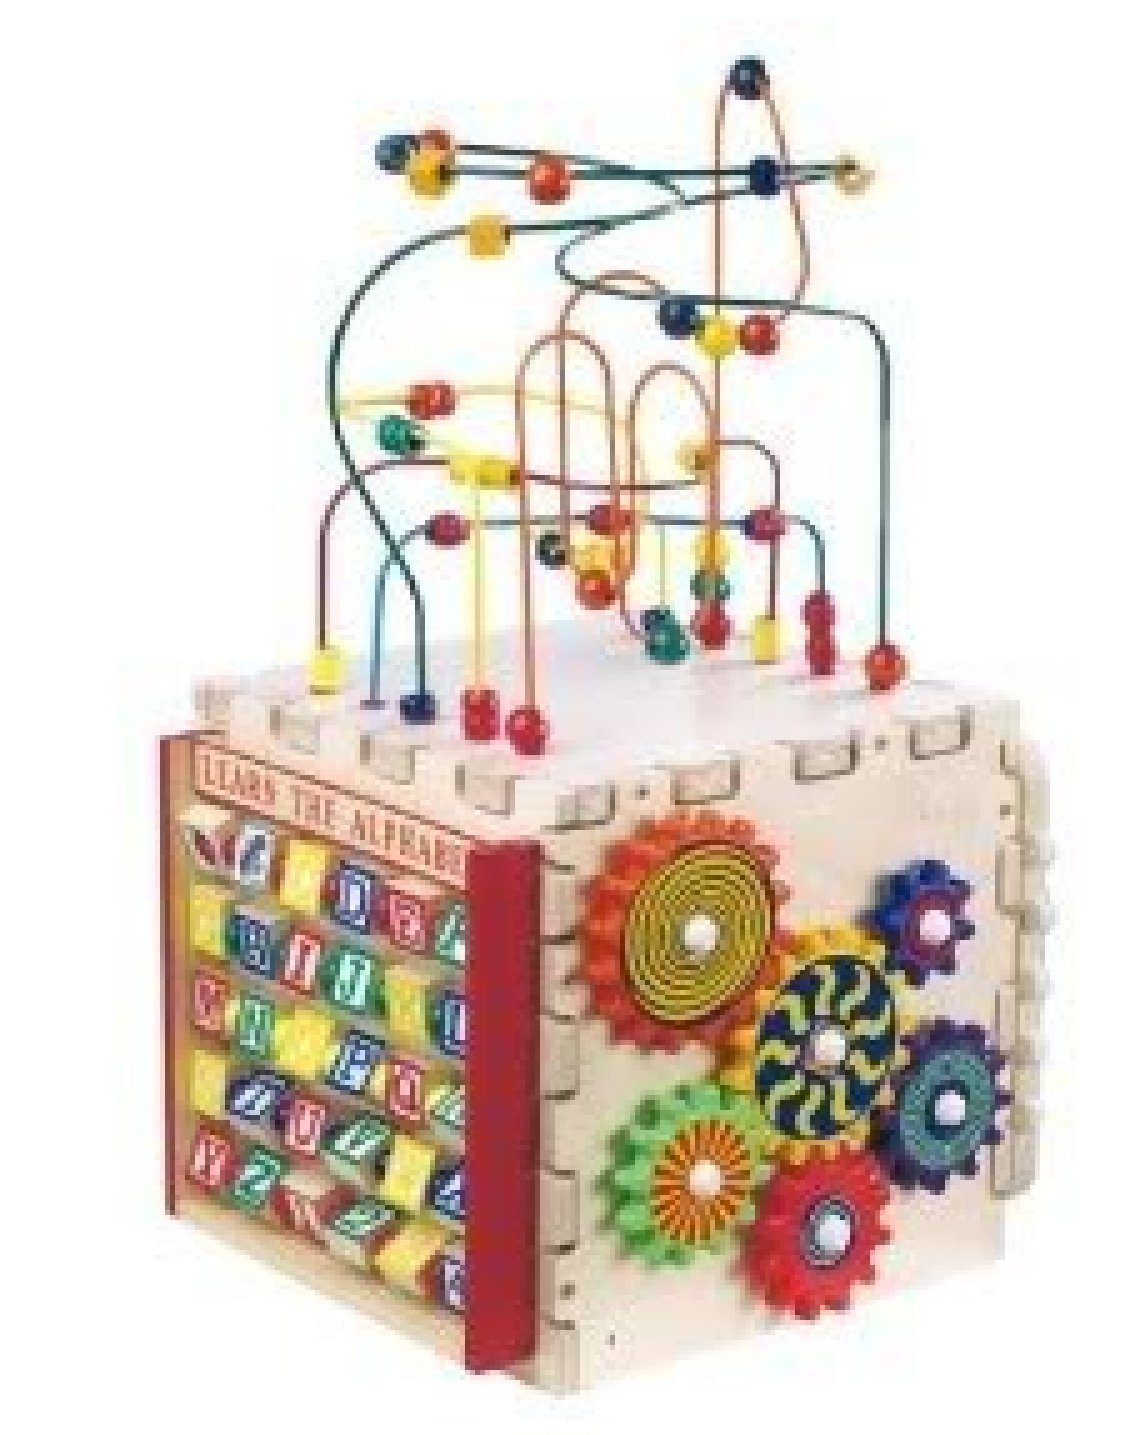 Anatex Deluxe Mini Play Cube w/ Mini Rollercoaster Express, Pathfinder, Counting Abacus & More Toy / Game / Play / Child / Kid [並行輸入品]   B01MU3HCOG